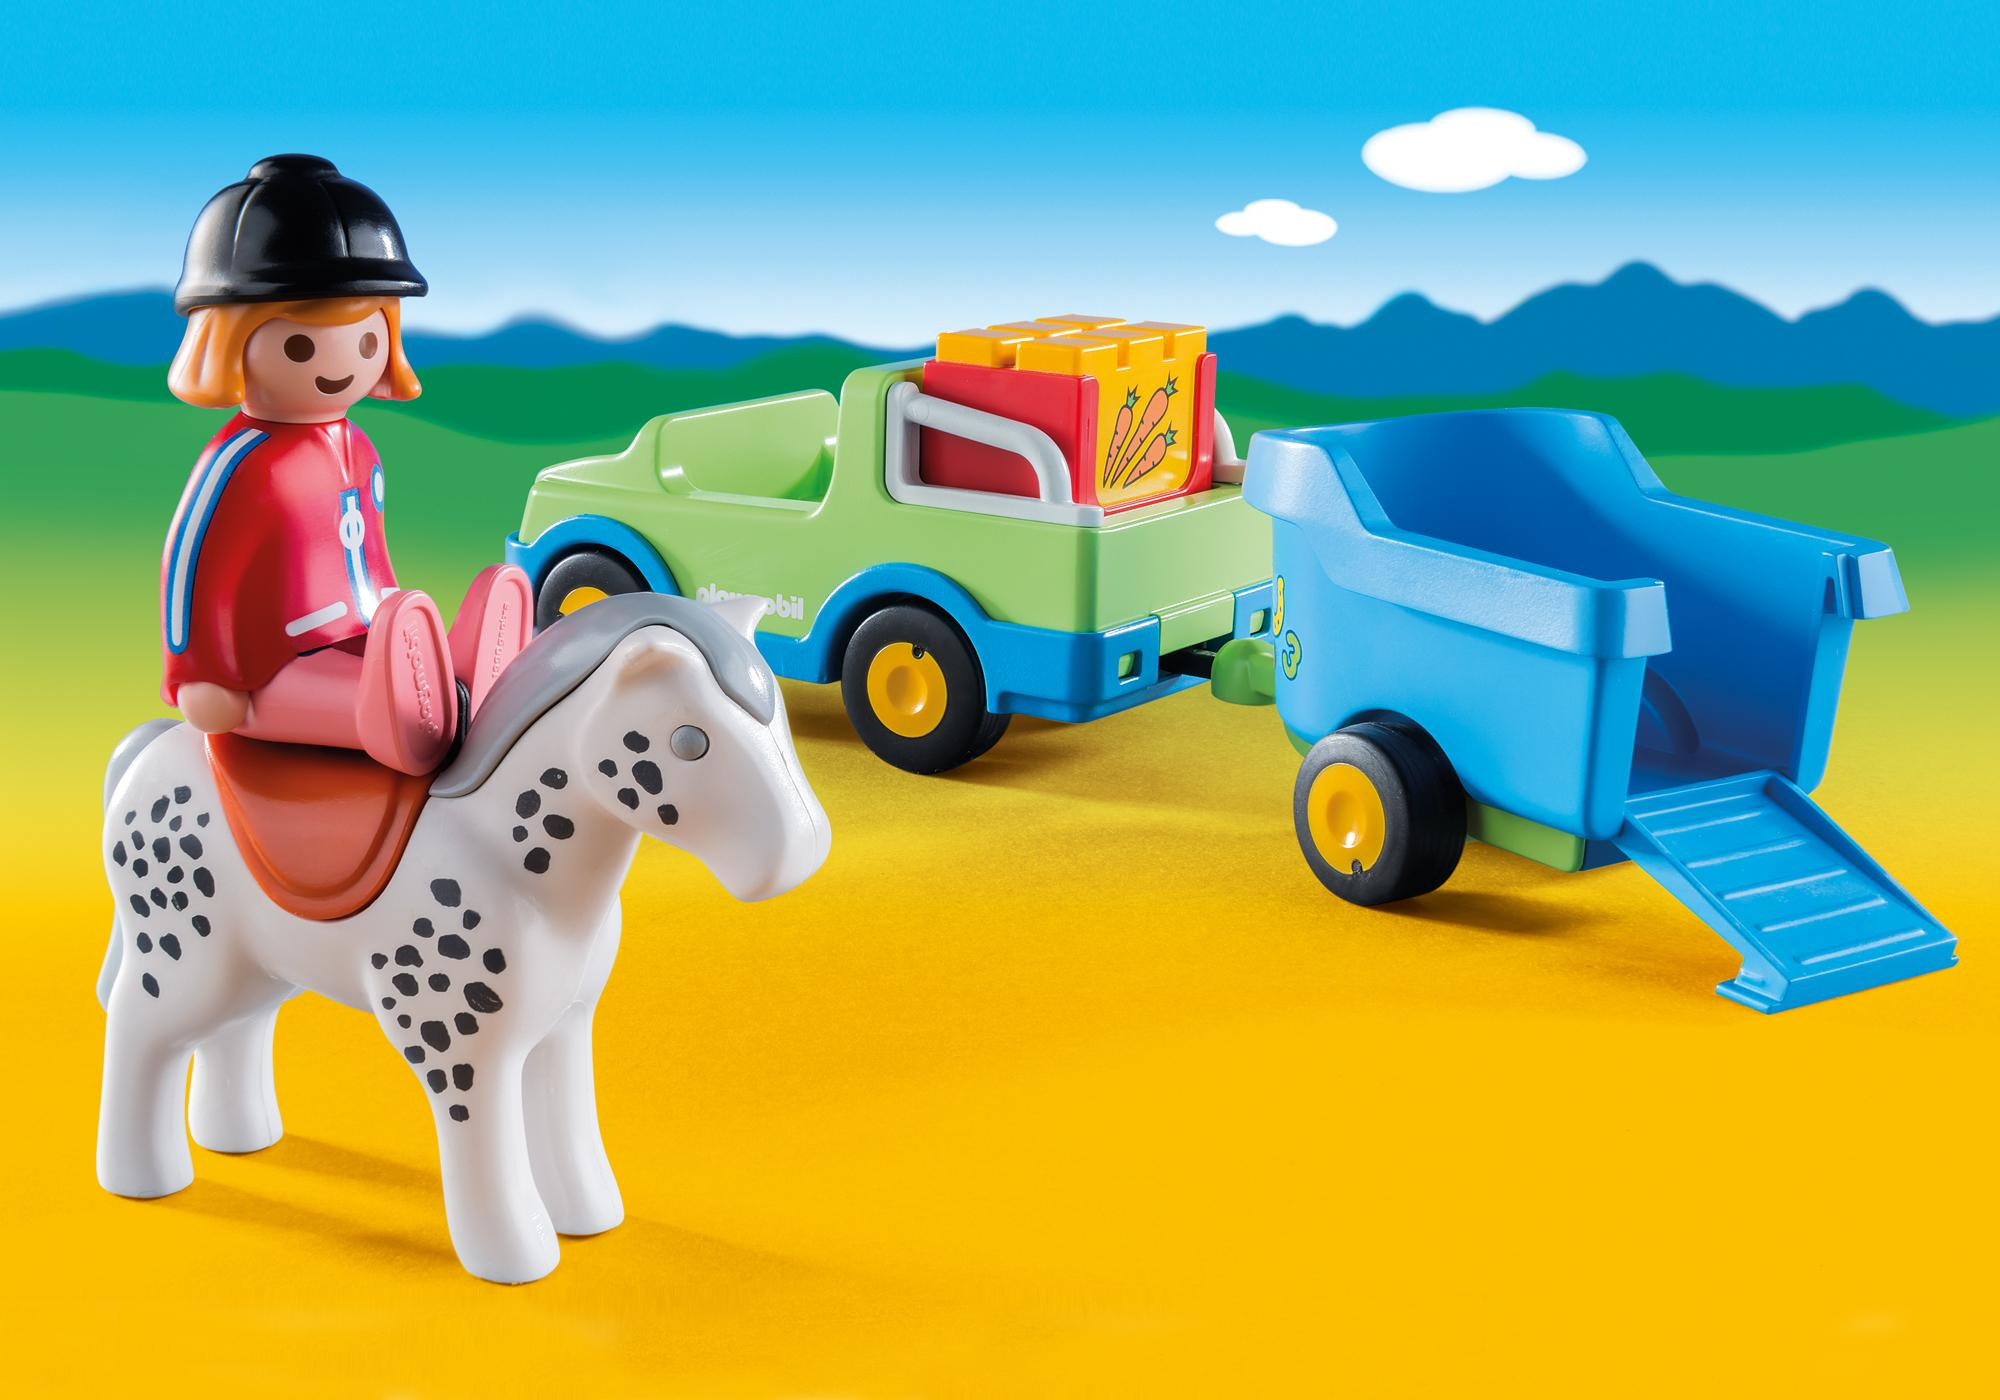 http://media.playmobil.com/i/playmobil/6958_product_extra1